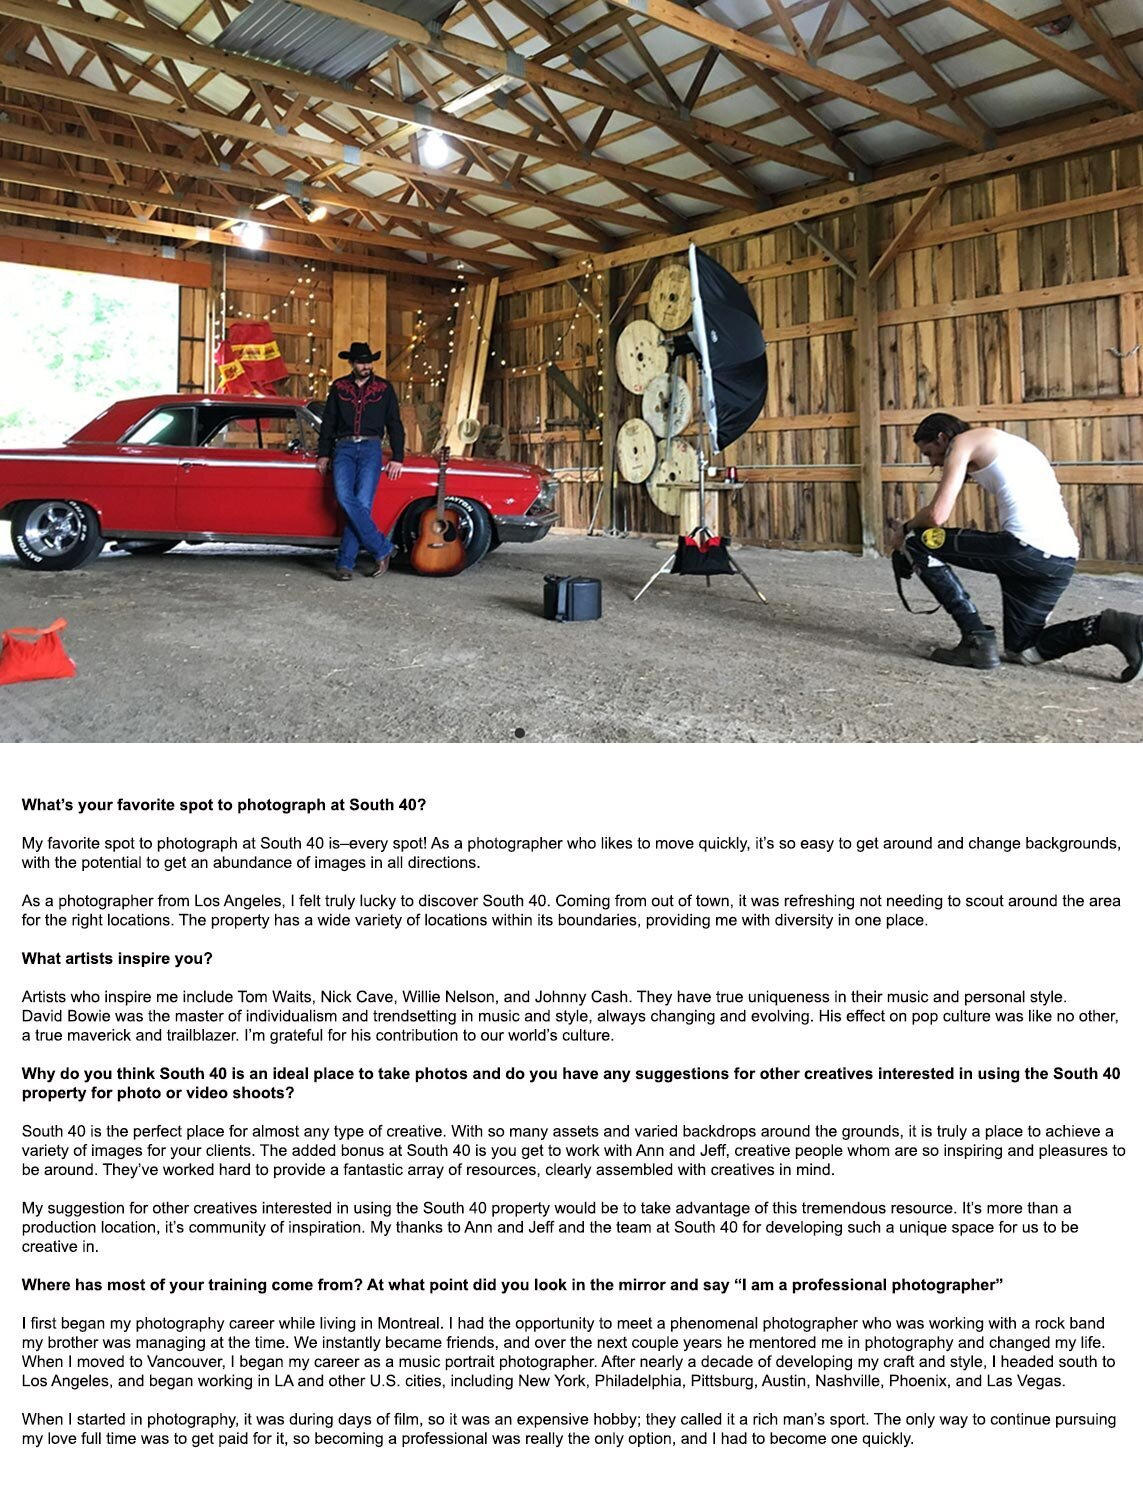 Interview featuring LA Photographer behind the scenes photoshoot at South 40 Mark Maryanovich on knee in foreground looking at back of camera country musician standing in front of red vintage car lights angled at him text beneath photo page 5